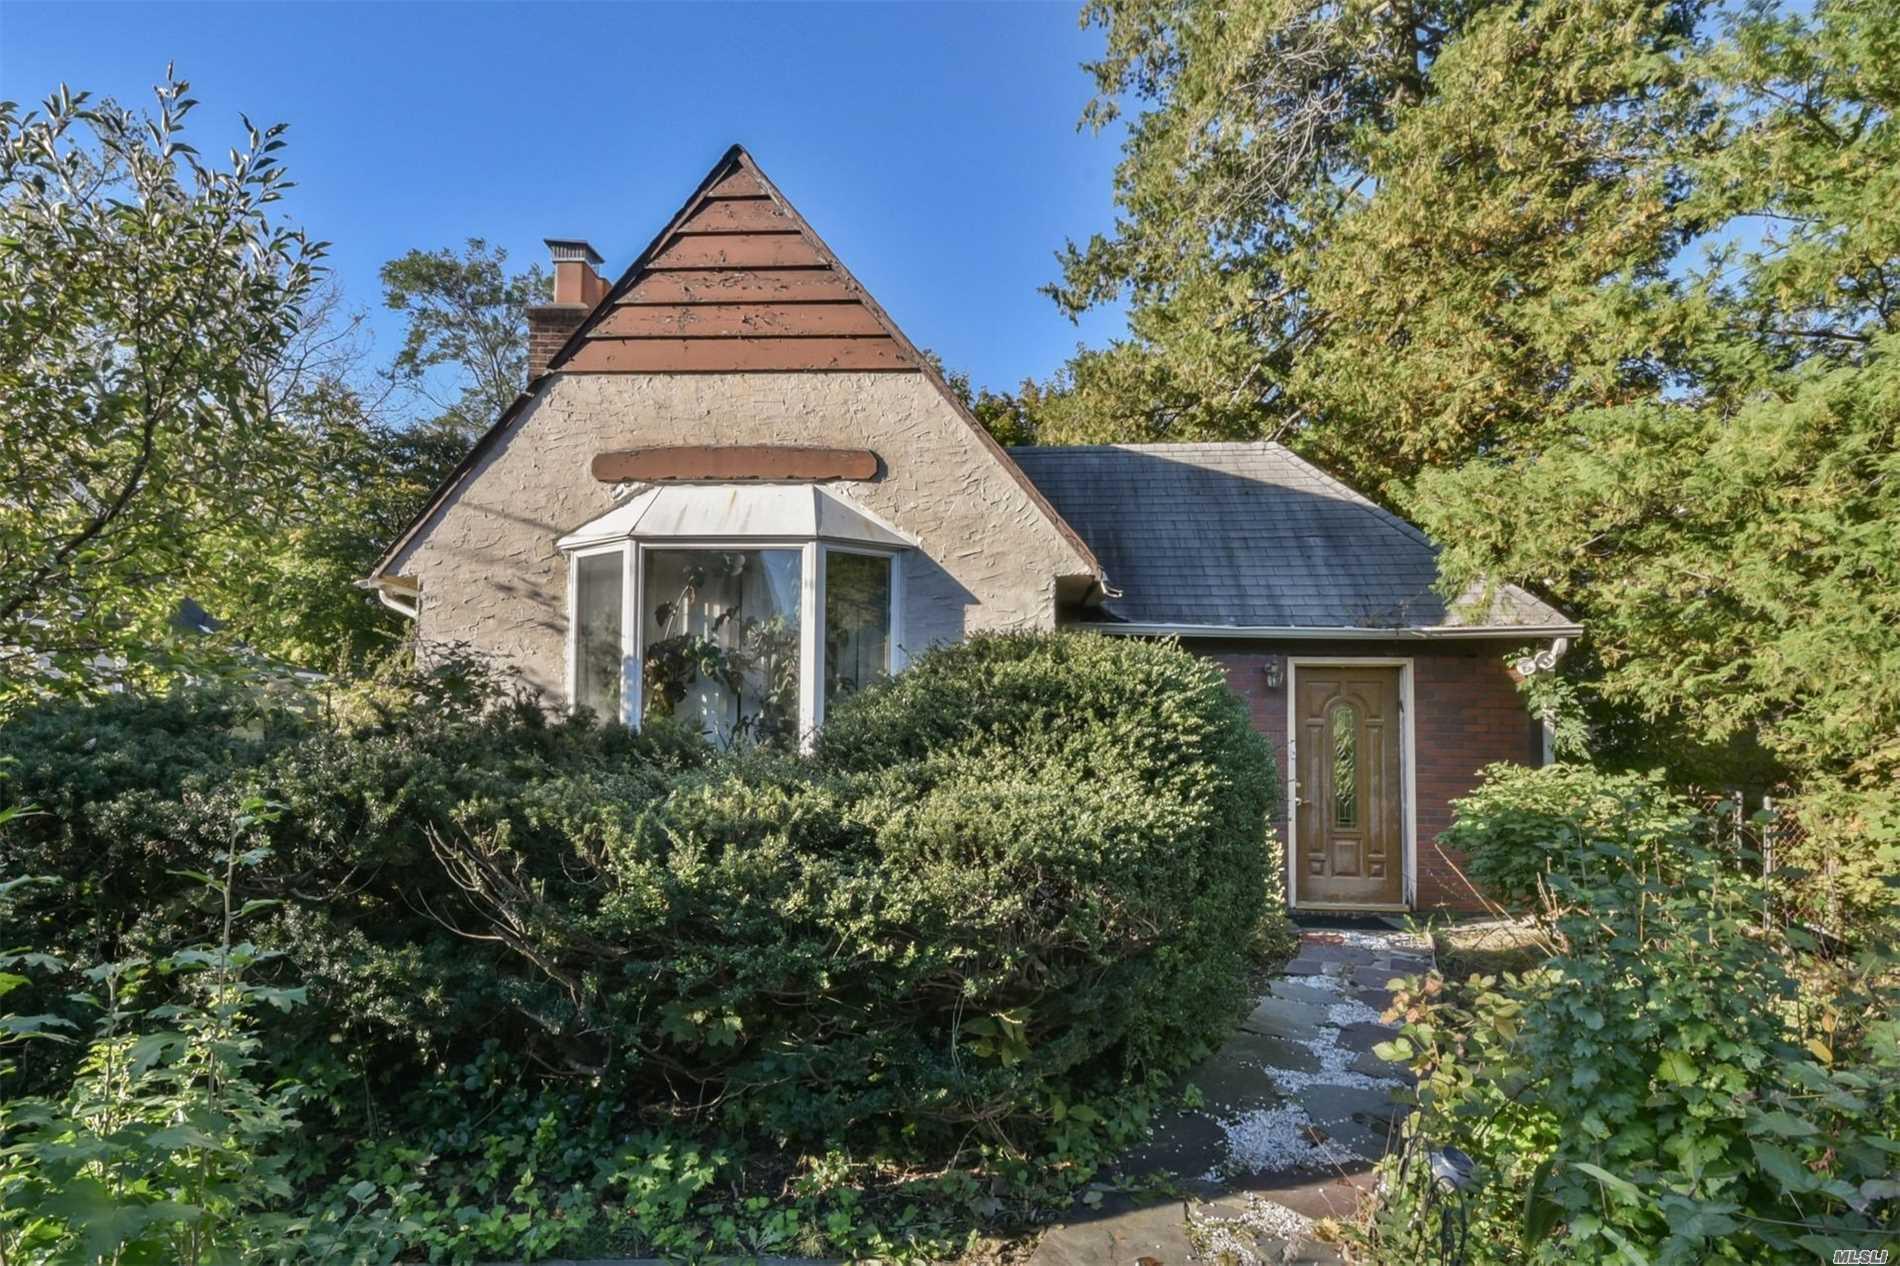 Centrally Located In Most Desirable Great Neck Estate With Its Own Police, Waterfront Pool, Tennis, And More. 3 Bedrooms And 2.5 Baths, Updated Window/Roof. Gas Heating&Cooking. Low Tax. Very Short Distance To Town, Shopping Market, Parks, Railroad Station, And Bus Stop. Award Winning Great Neck School District. Roof 10 Yr, New Anderson Window, Central Air